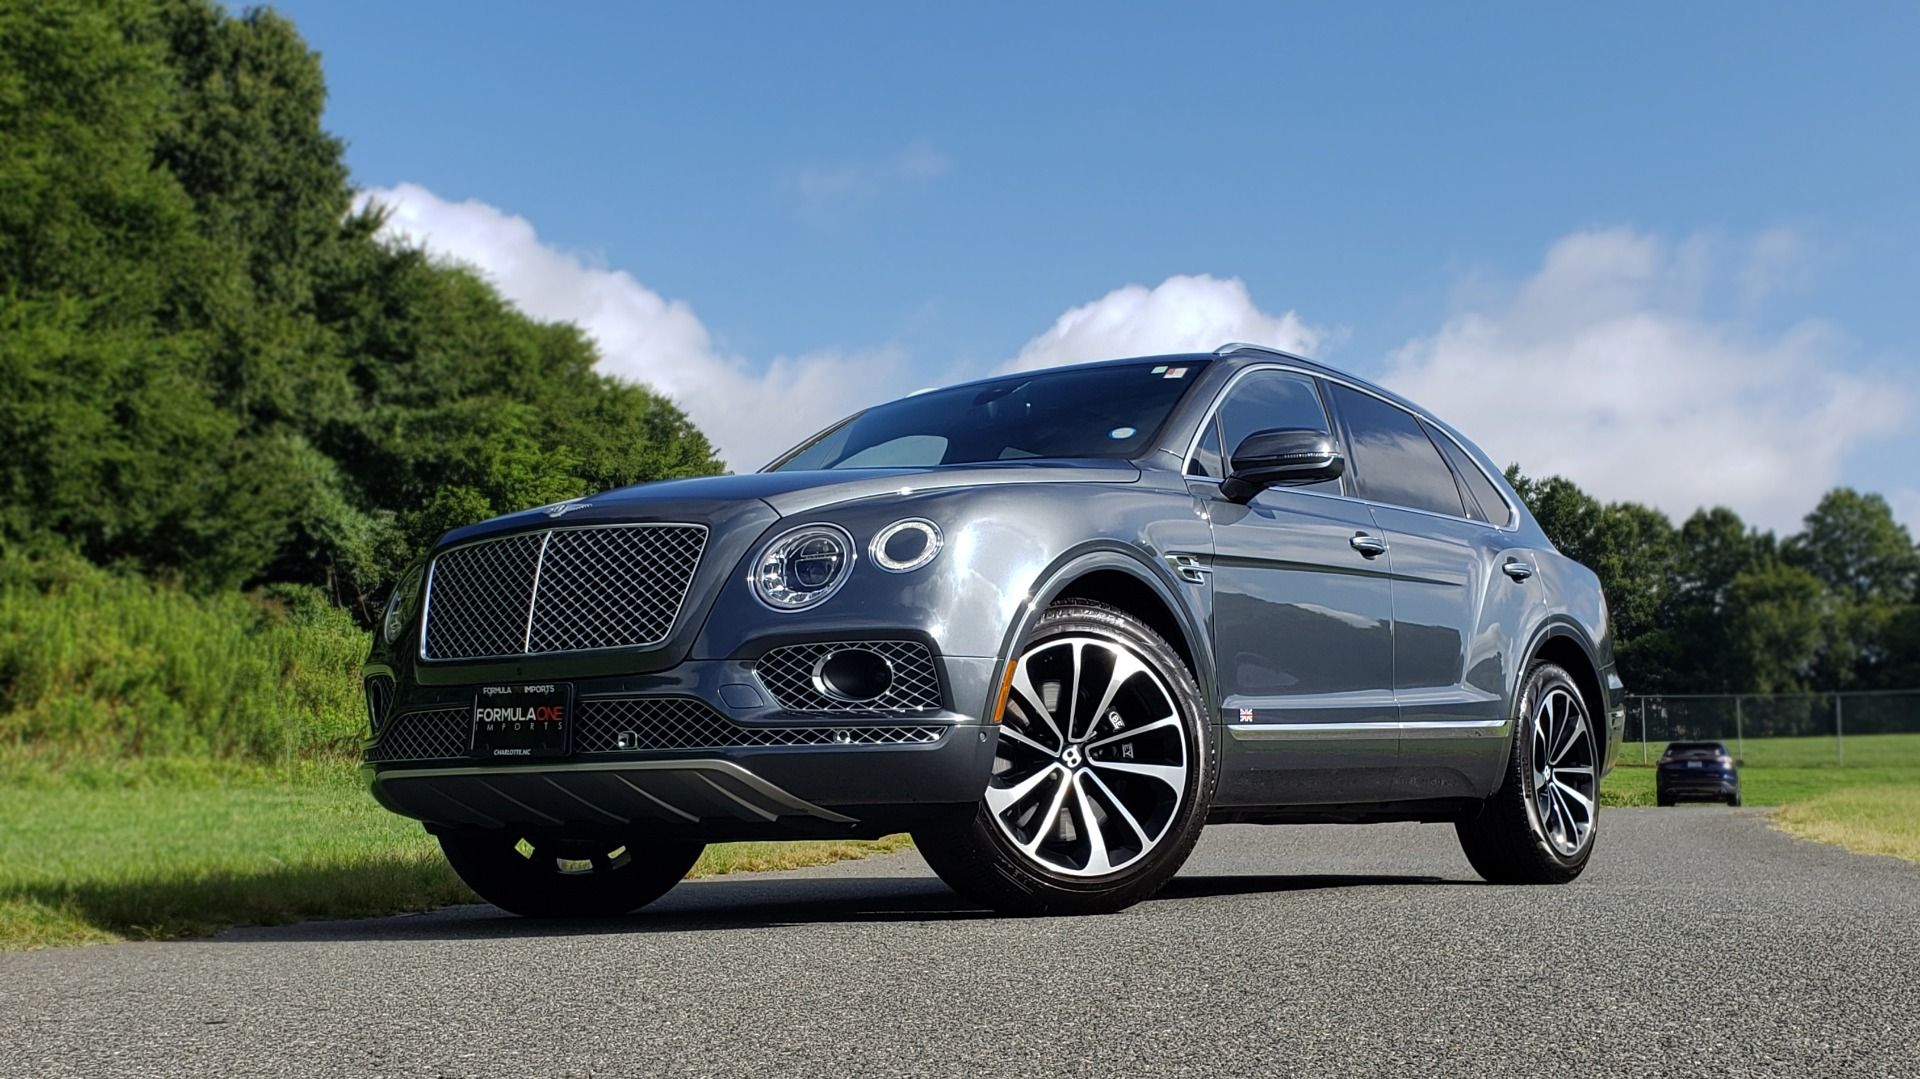 Used 2017 Bentley BENTAYGA W12 600HP / NAV / HTD SEATS / PANO-ROOF / REARVIEW / 21IN WHEELS for sale $149,995 at Formula Imports in Charlotte NC 28227 2